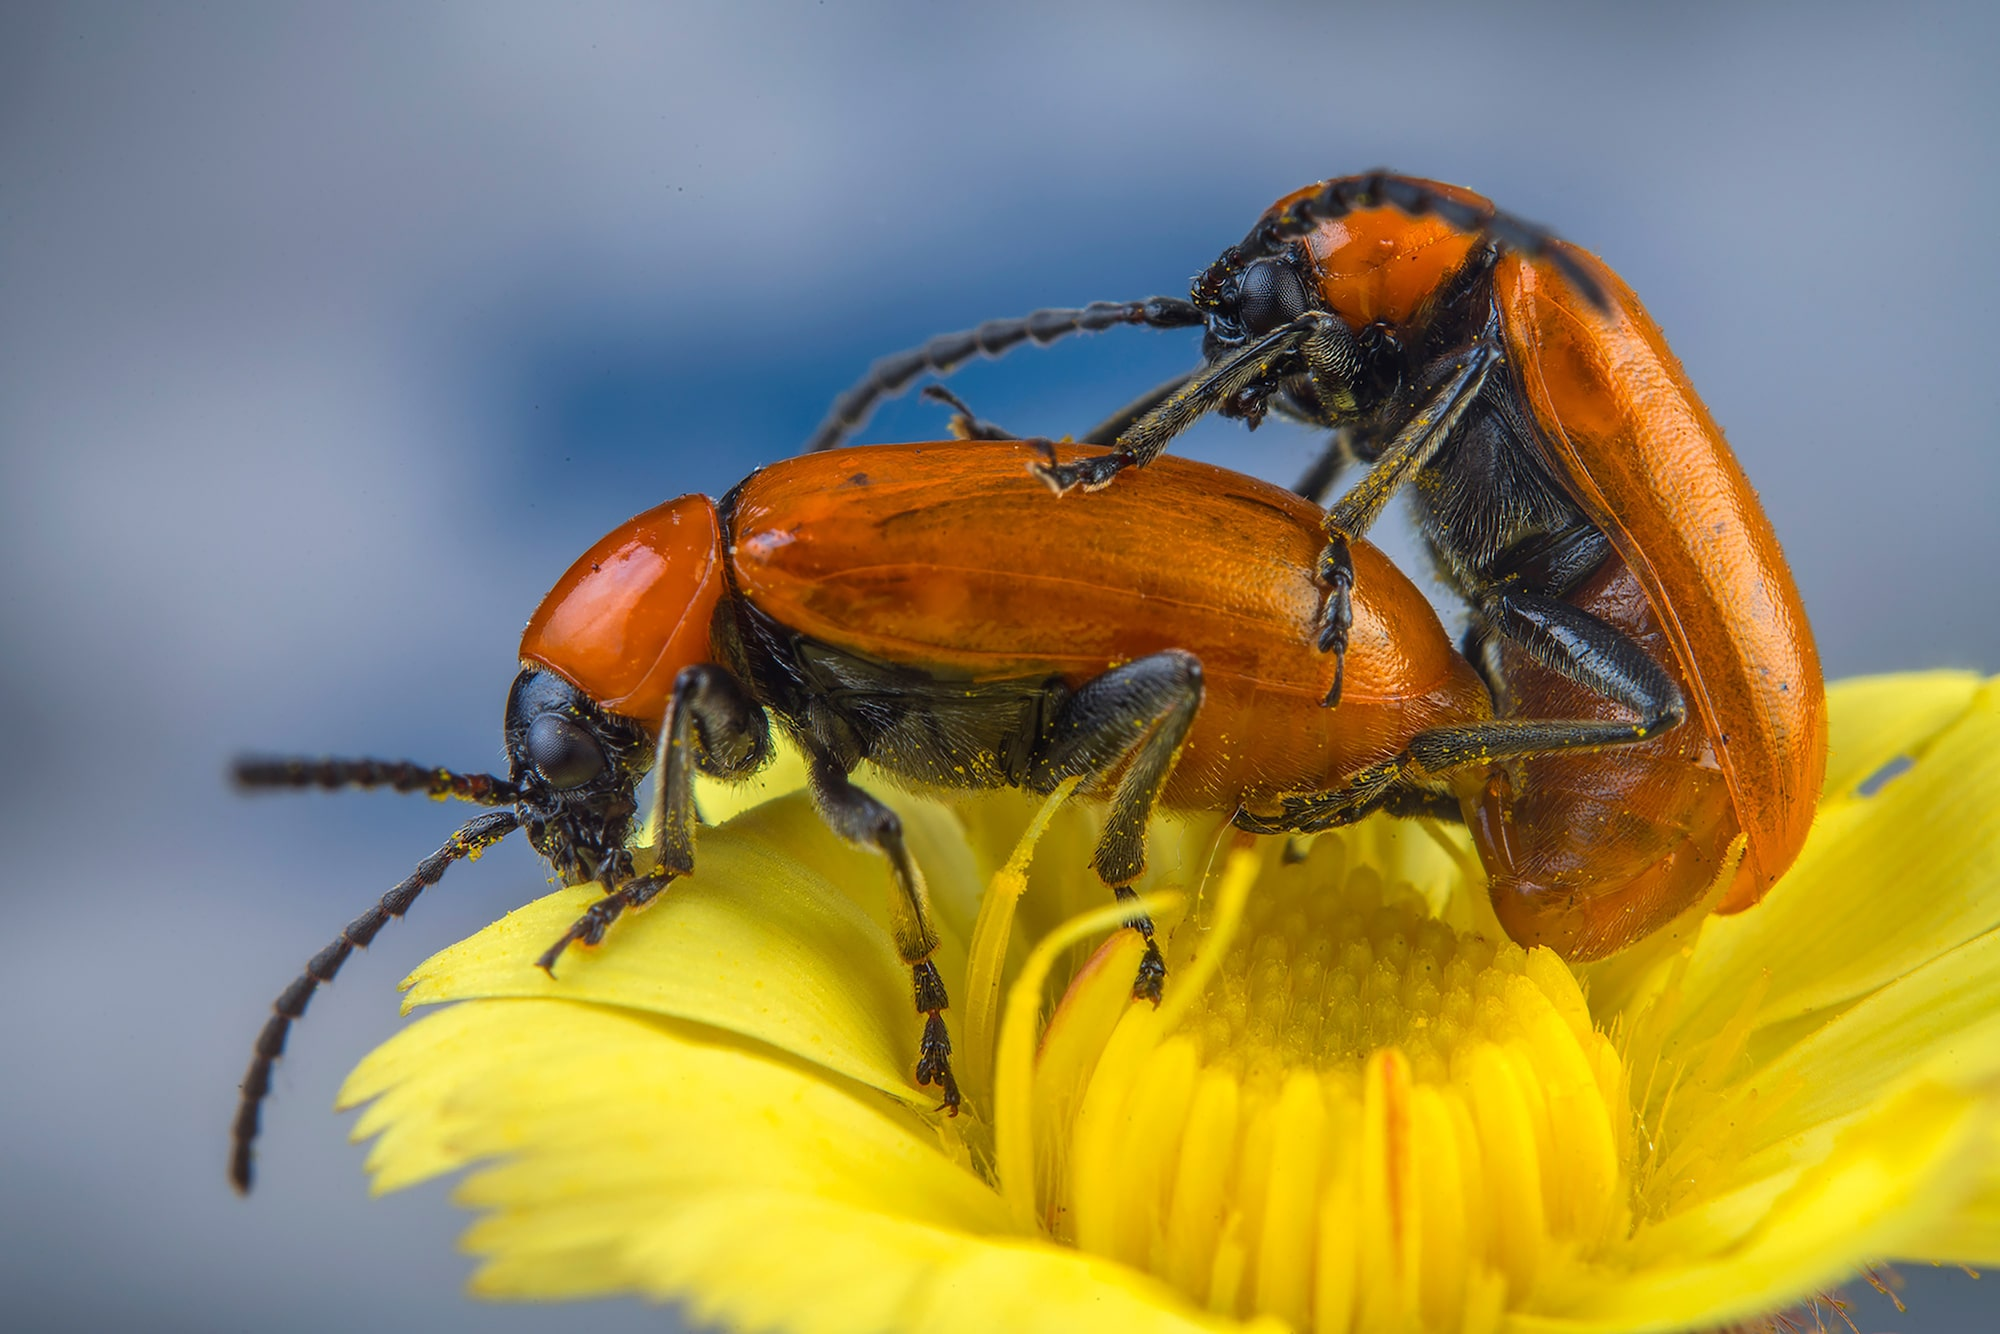 javier aznar sony alpha 7RIII macro shot of 2 beetles mating atop a flower